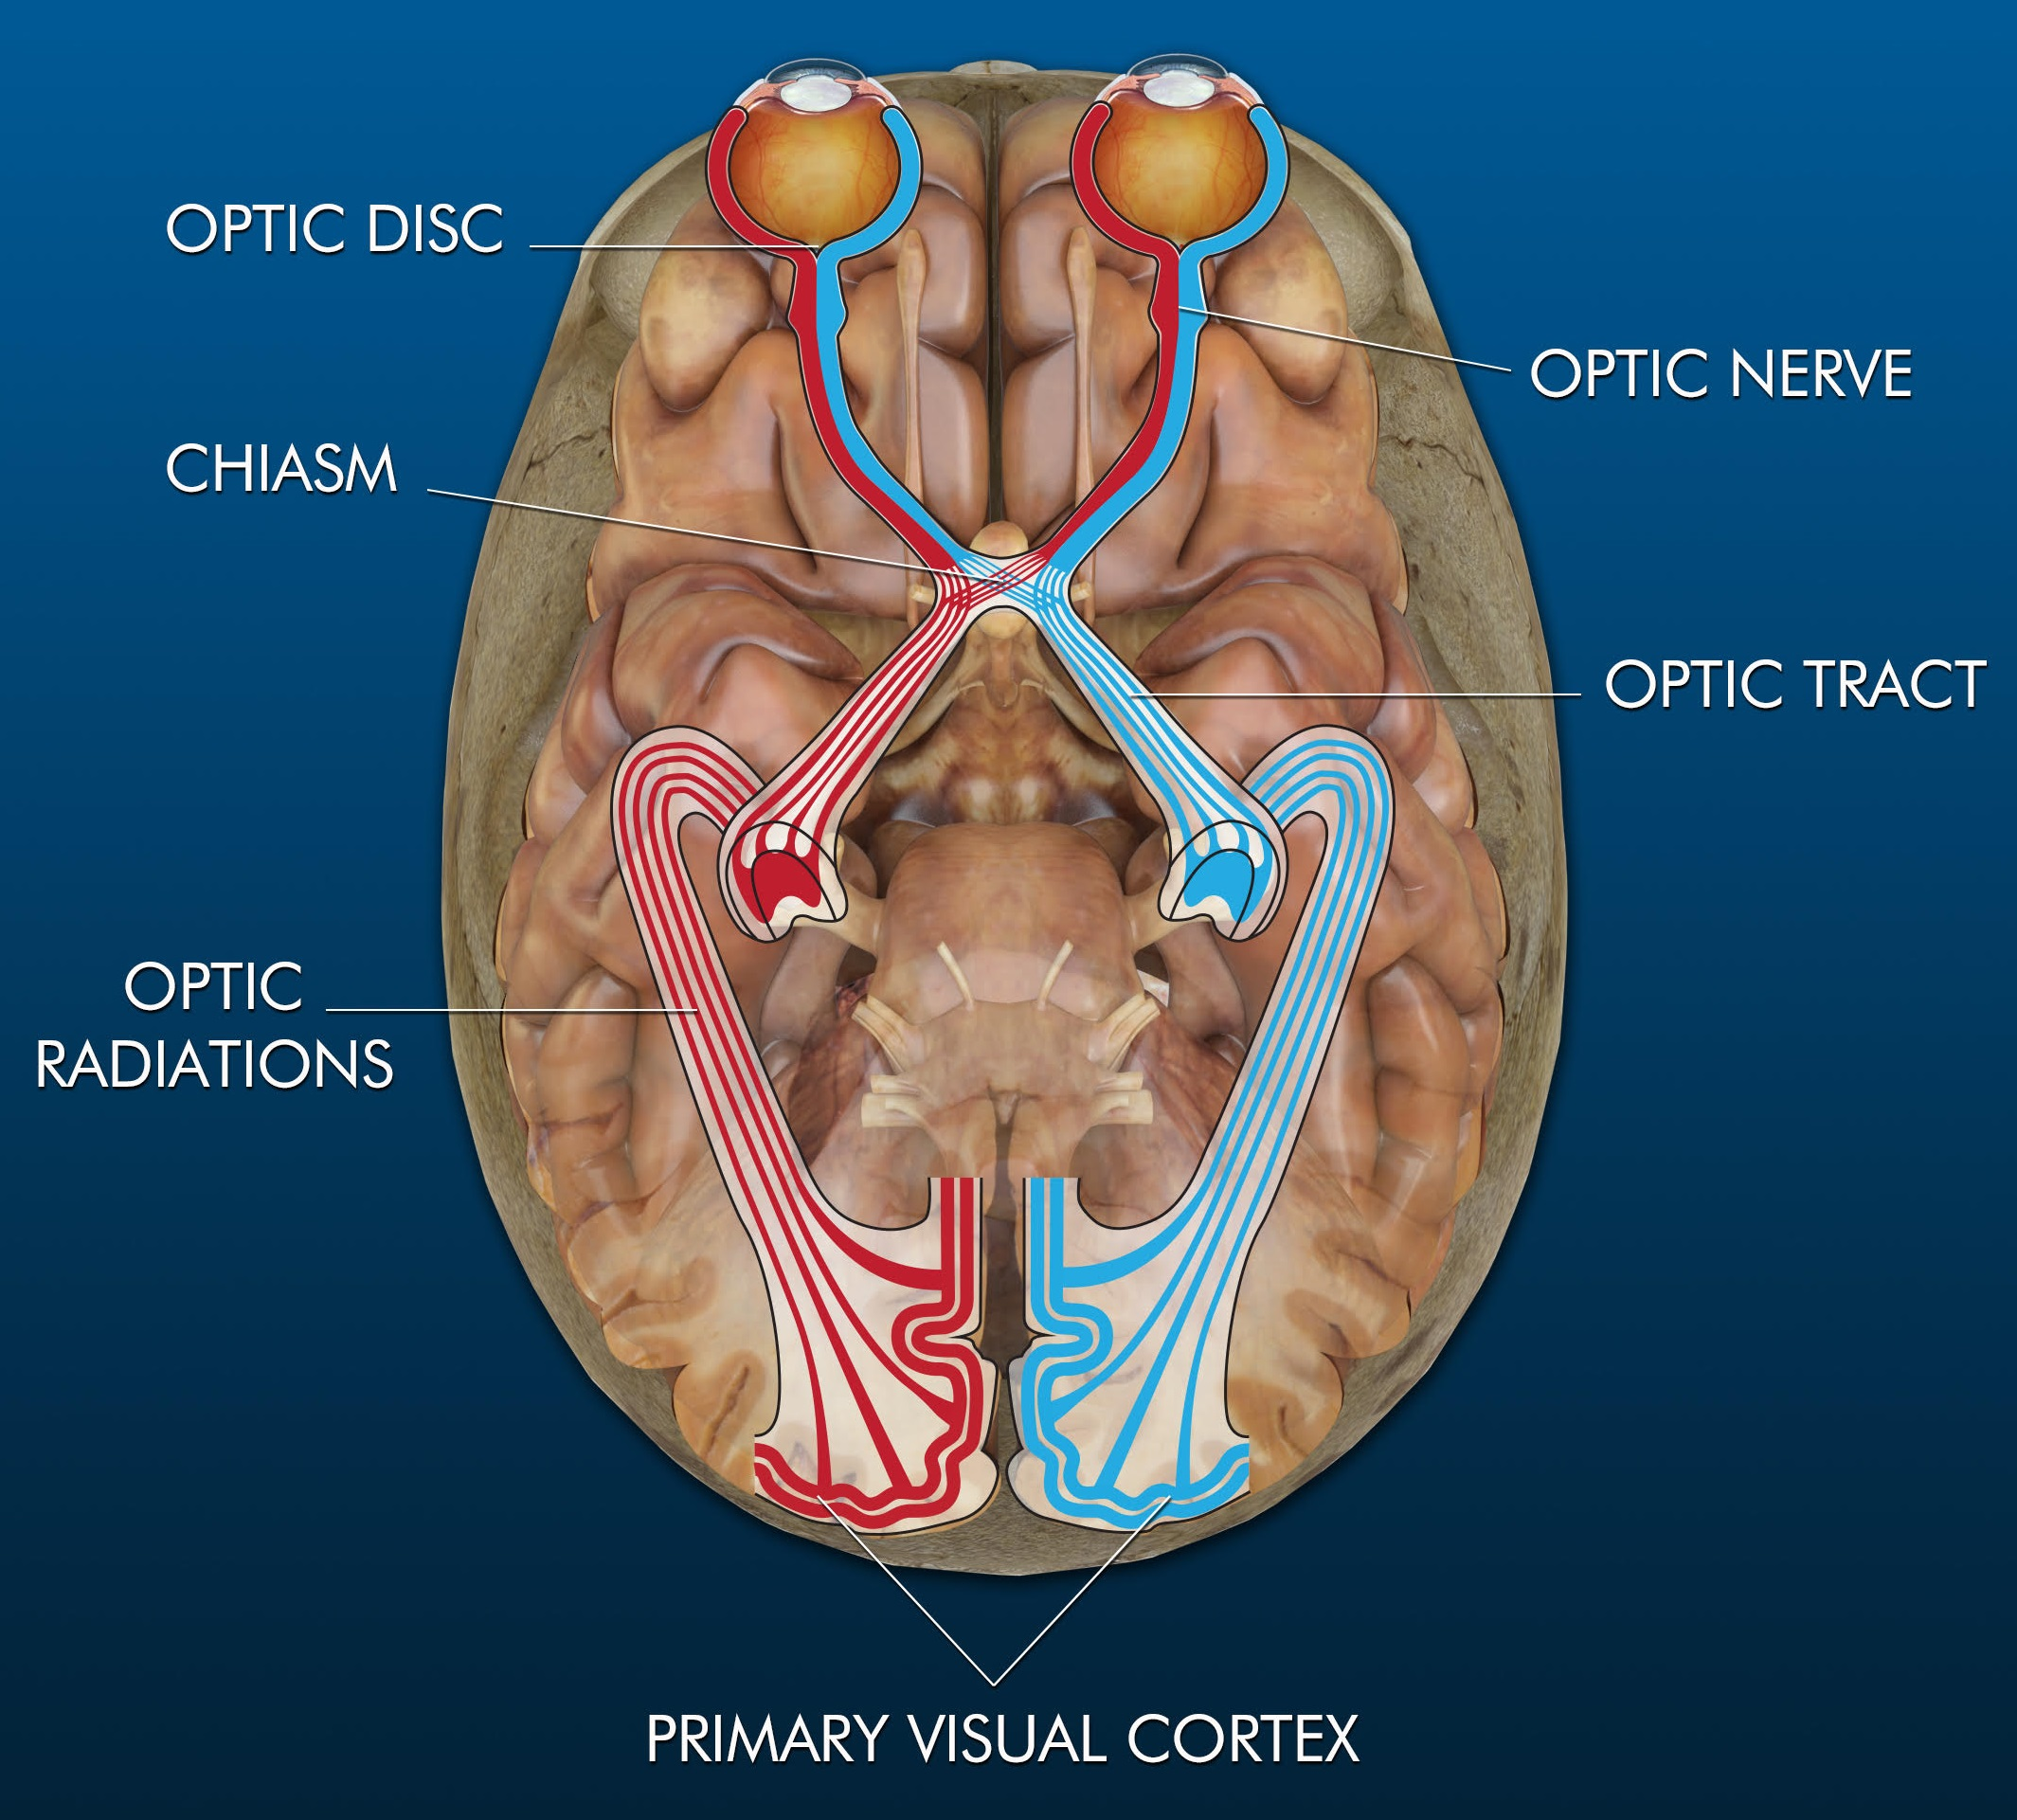 optic nerves and chiasm - ophthalmology training, Human Body